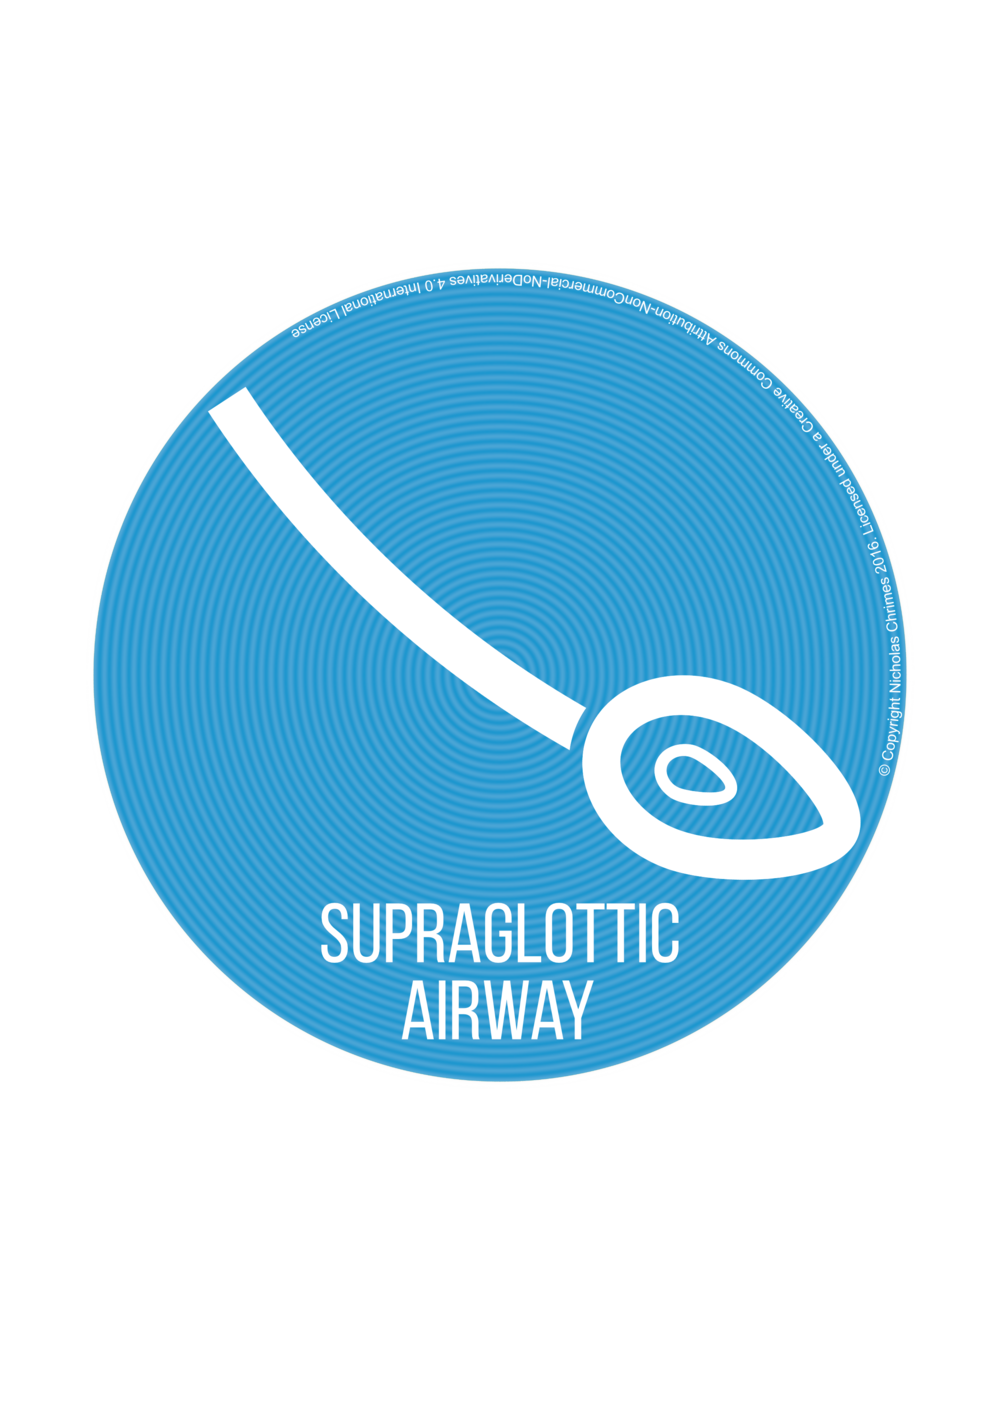 Supraglottic Airway Icon - with text (Right click to download)